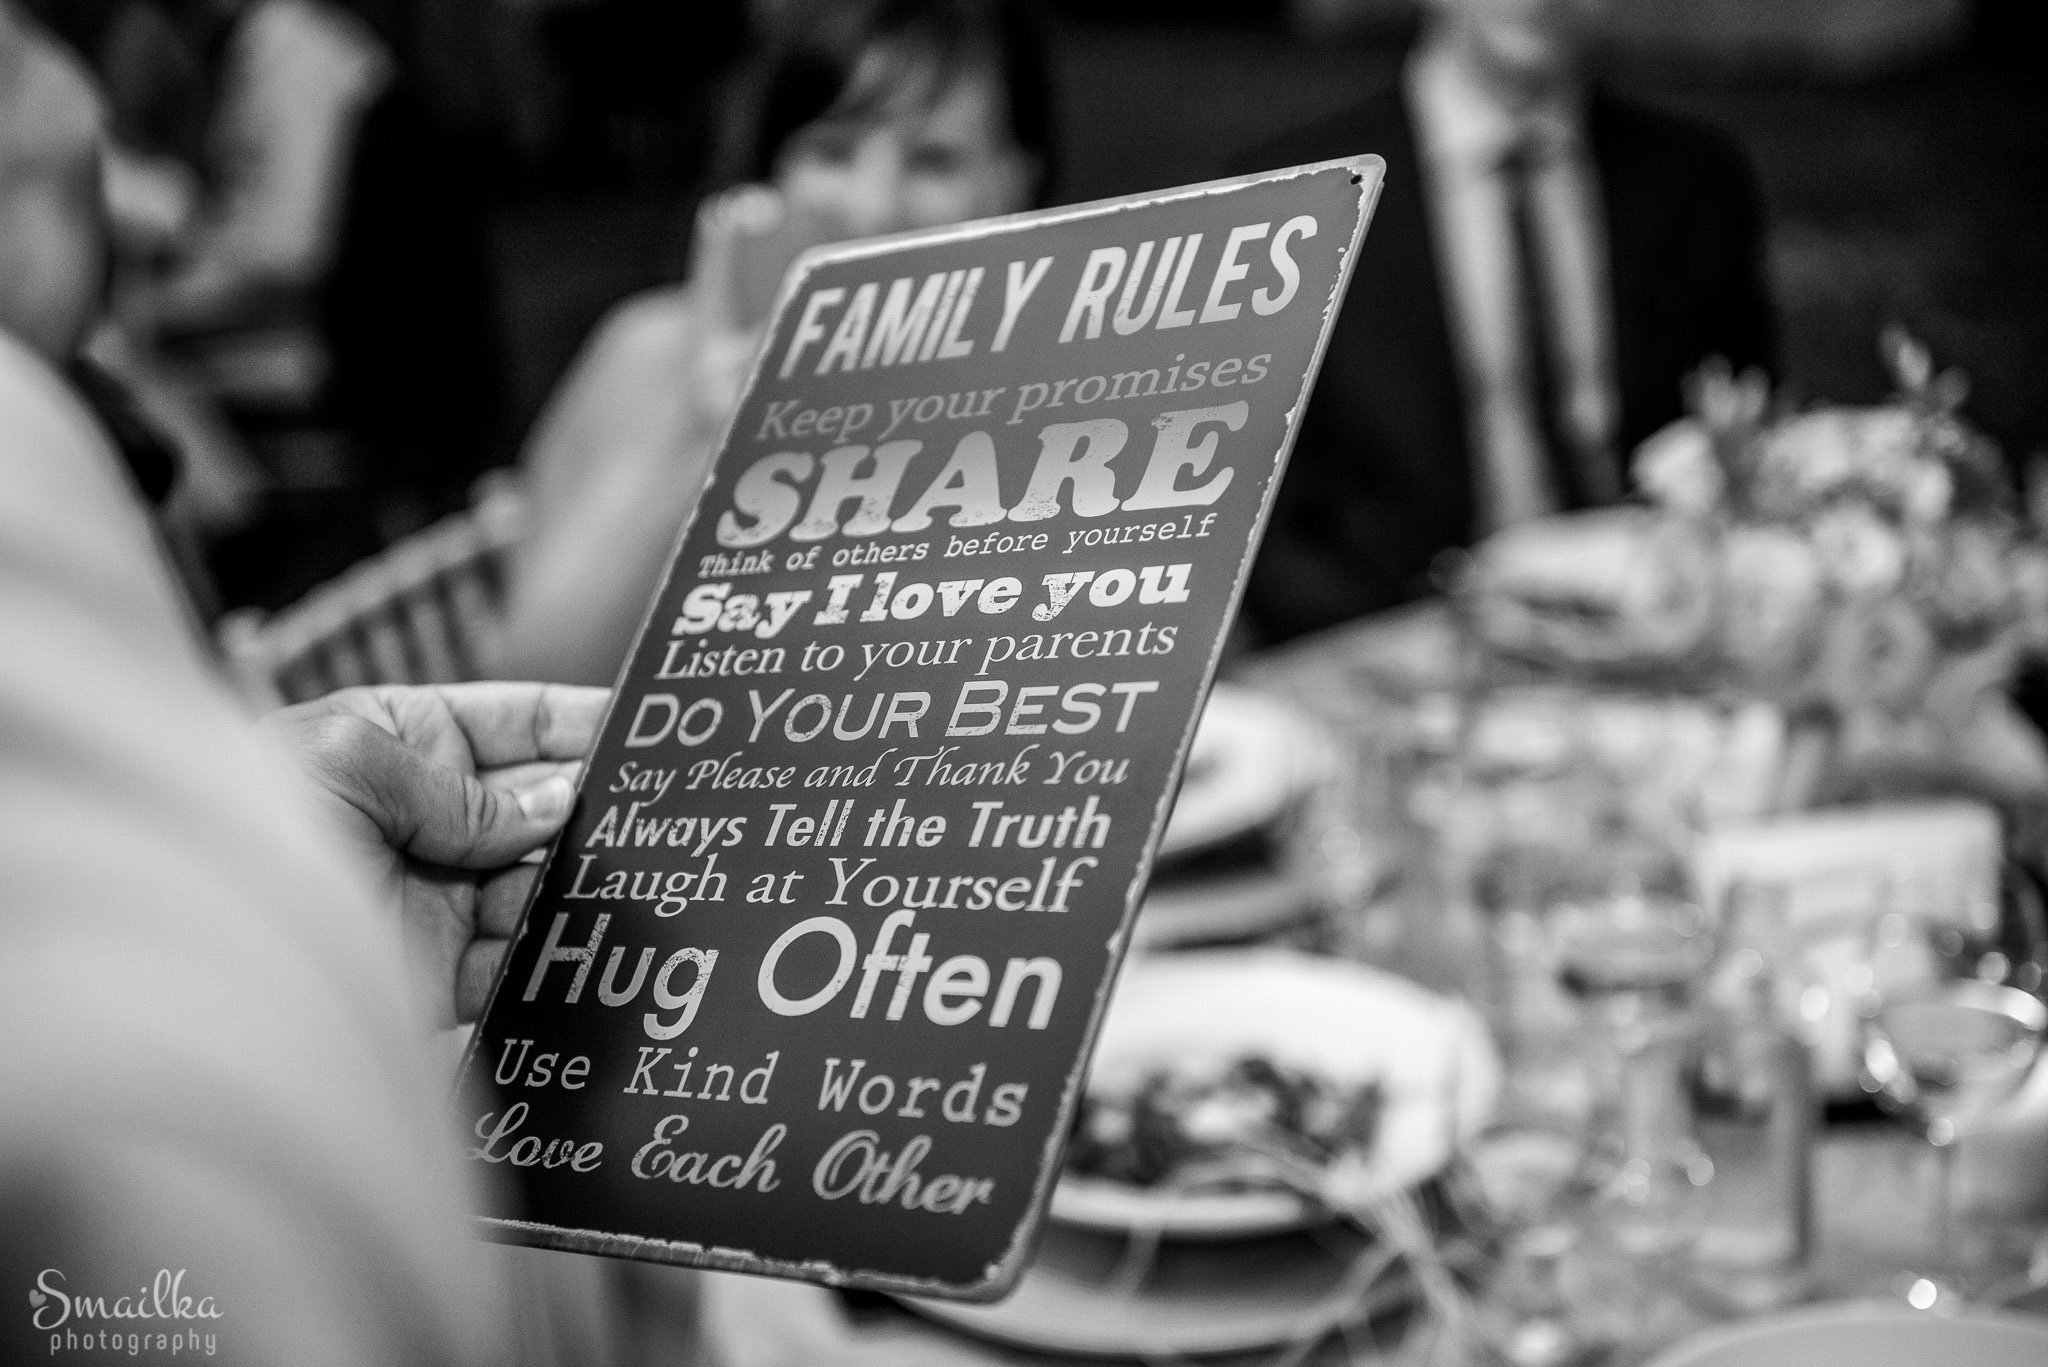 A photo of a family ruleset